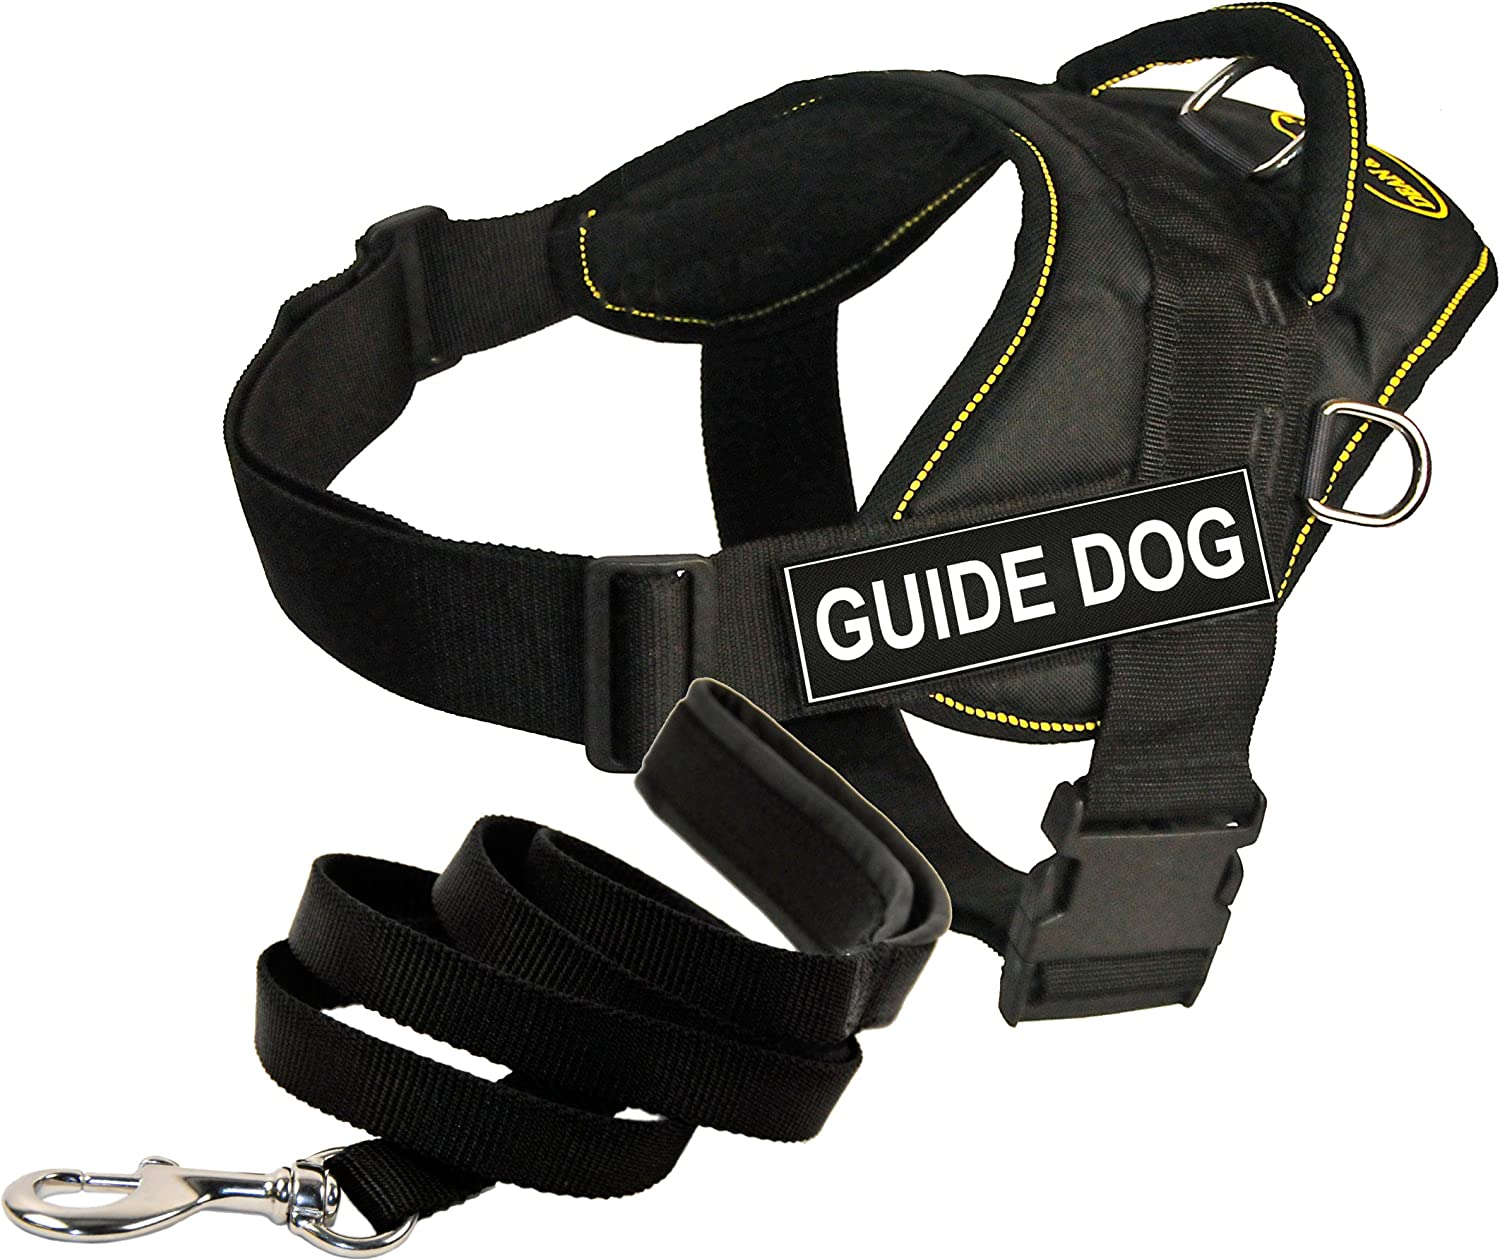 Dean & Tyler Bundle One DT Fun Works  Harness, Guide Dog, Yellow Trim, XXSmall (1822Inch) + One Padded Puppy  Leash, 6Feet Stainless Snap, Black